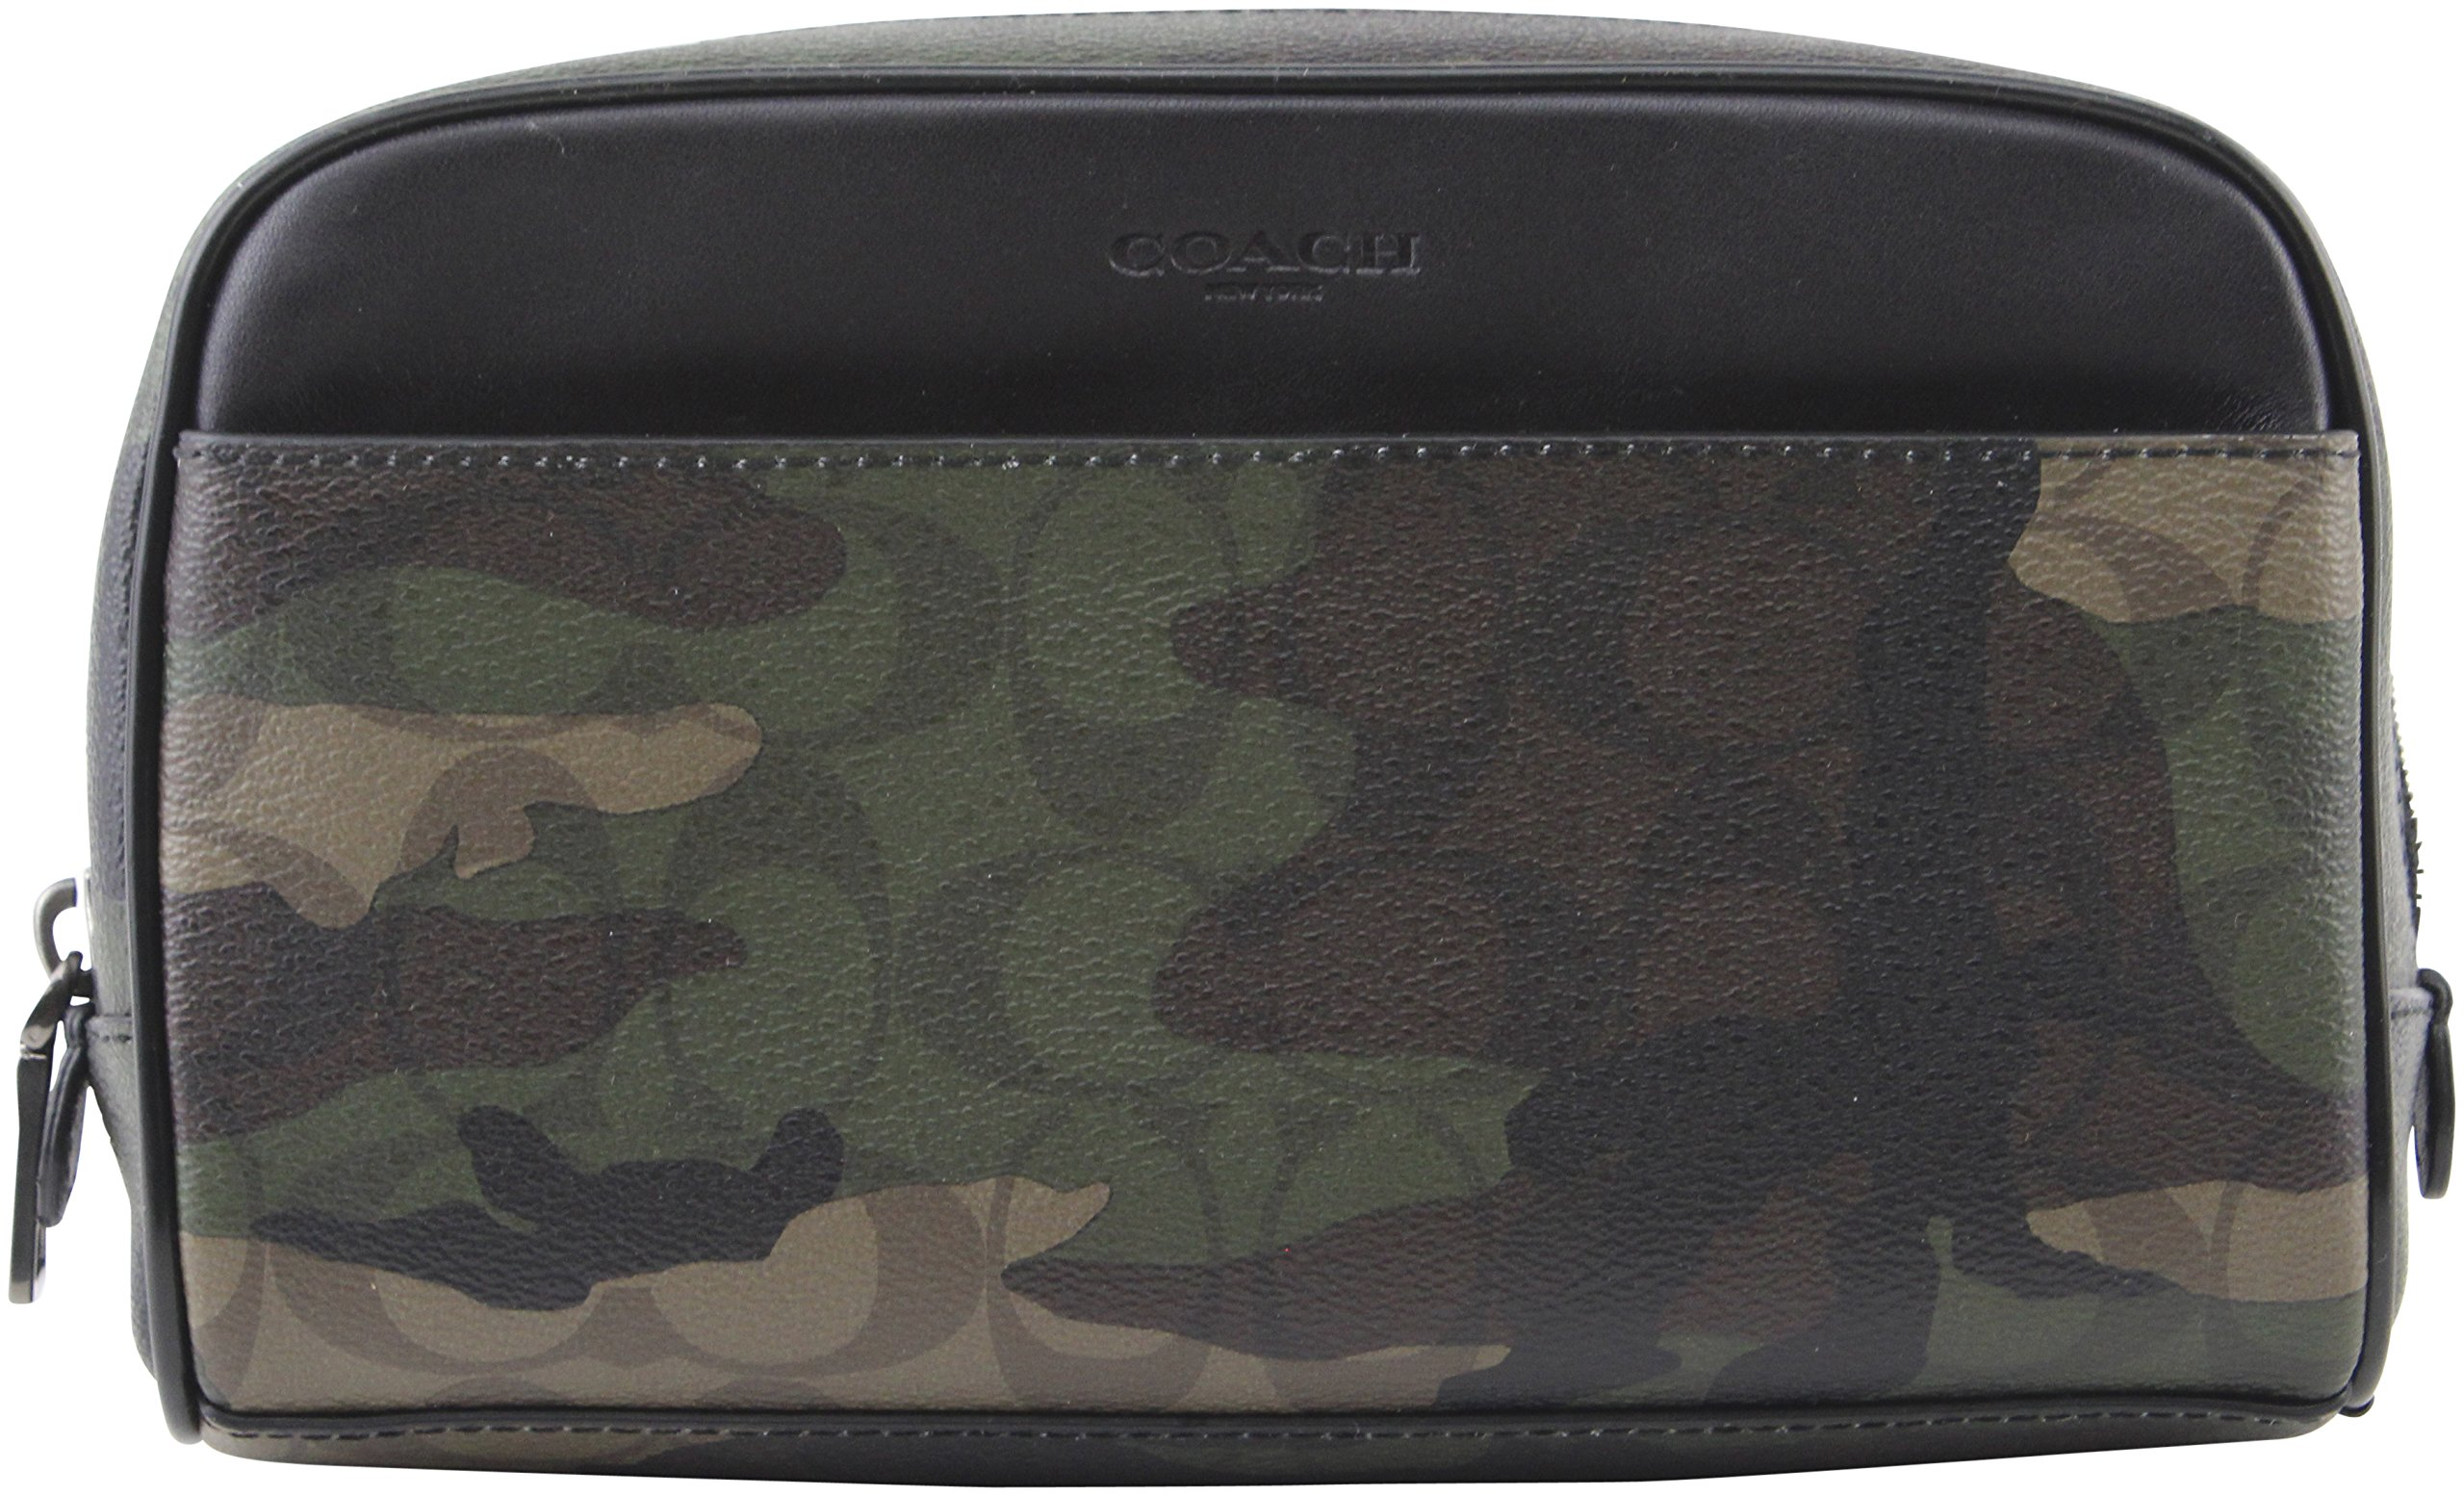 Coach Overnight Travel Kit in Signature Camo Coated Canvas Bag, Style F12008, Mahogan/ Dark Green Camo by Coach (Image #1)